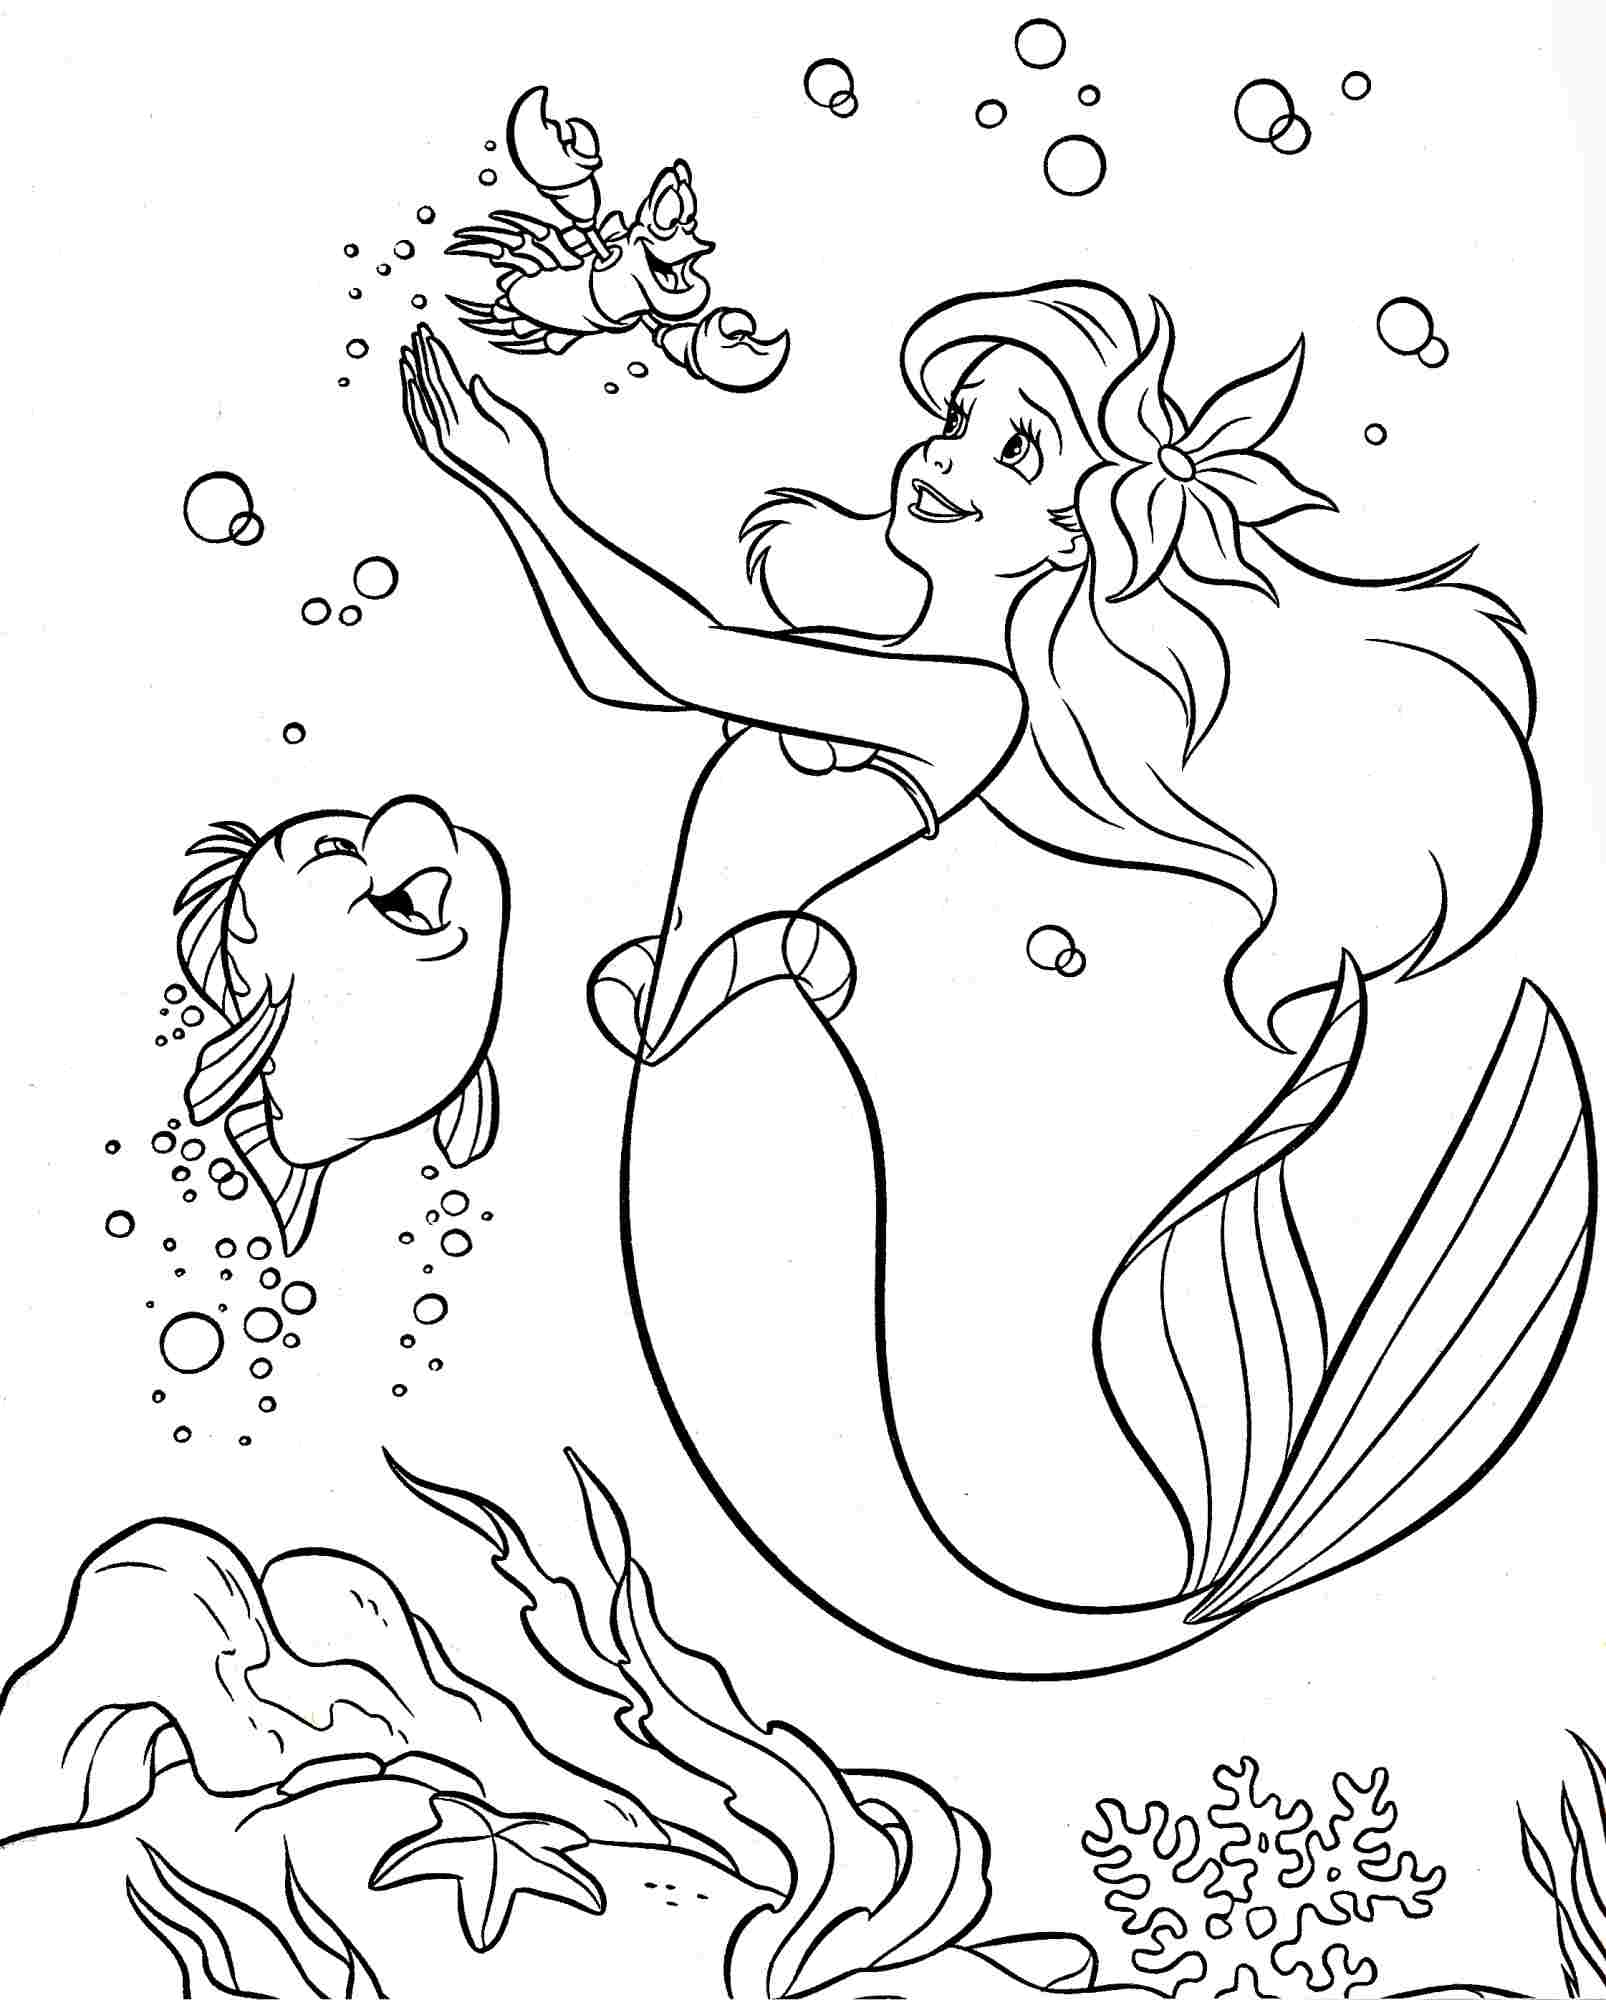 Colouring Pages Coloring Pages Disney Princess Little Mermaid Ariel Printable Of Walt Disney Coloring Pages Marie Walt Disney Characters Download